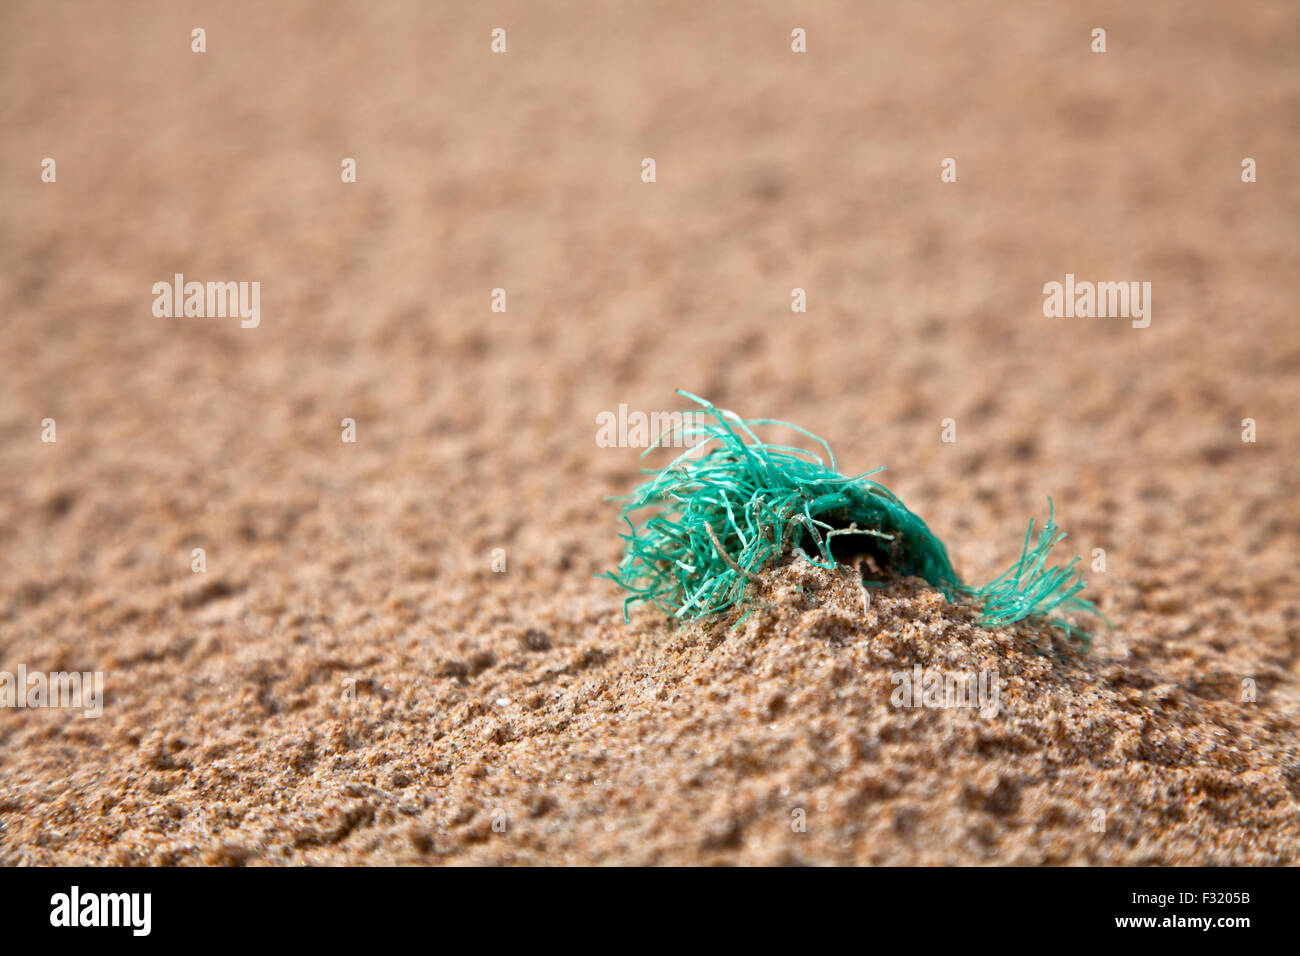 Green plastic debris on a beach. - Stock Image